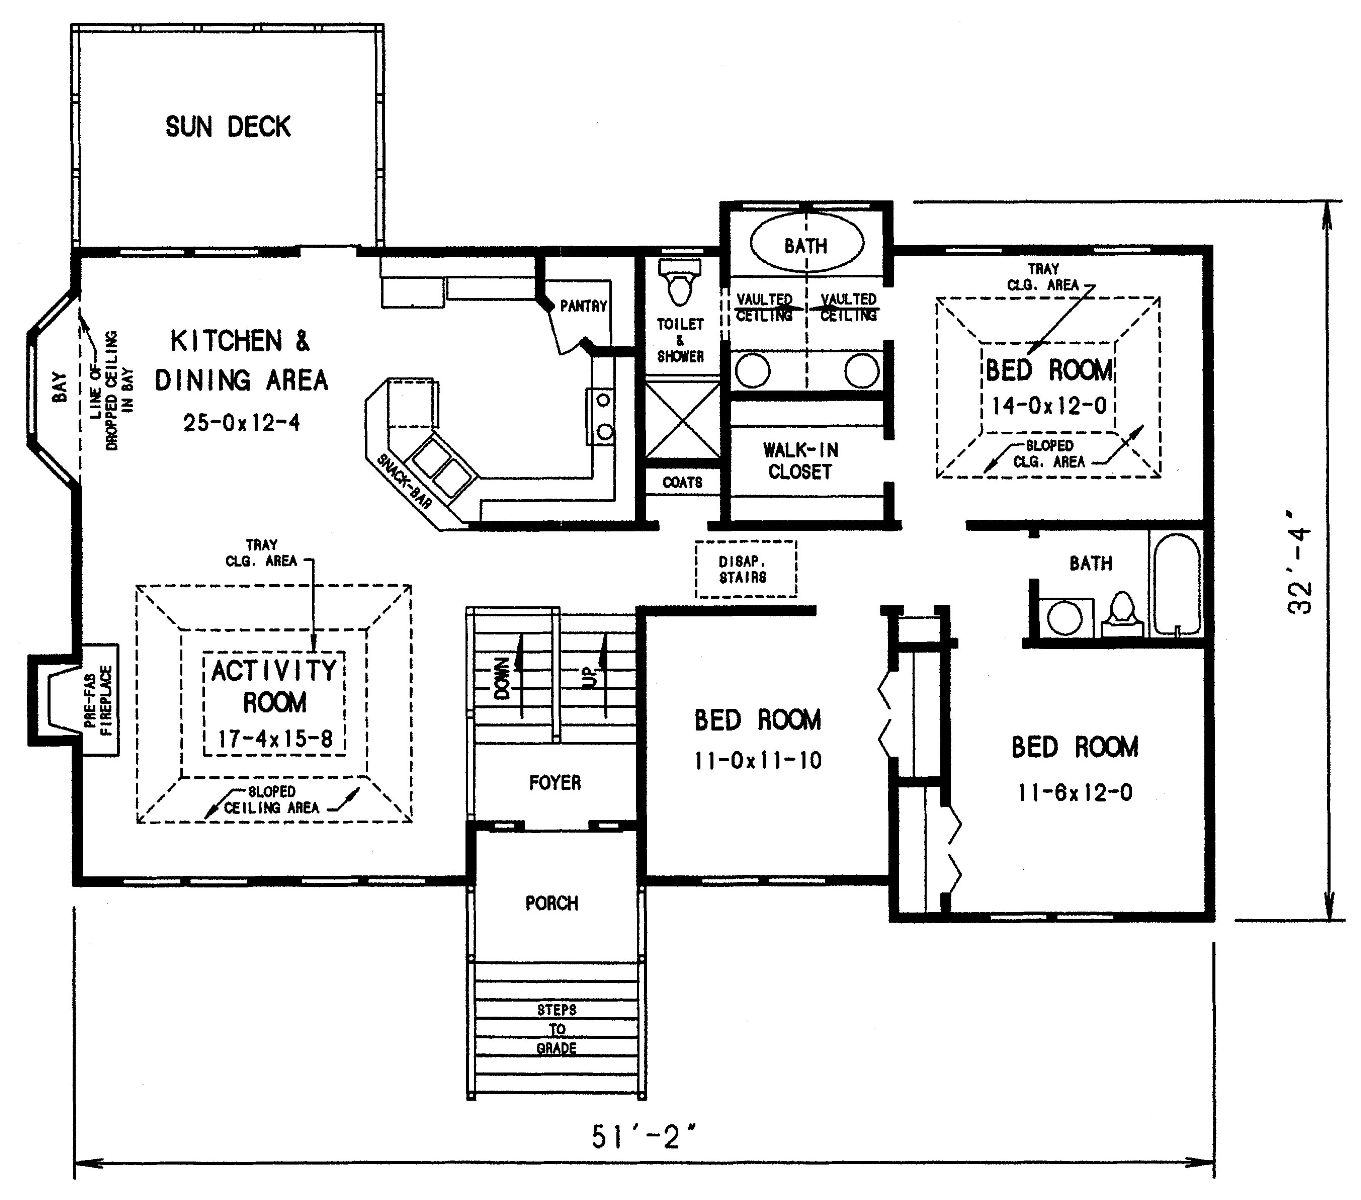 The dahlonega 3303 3 bedrooms and 2 baths the house for Ranch home floor plans split bedrooms